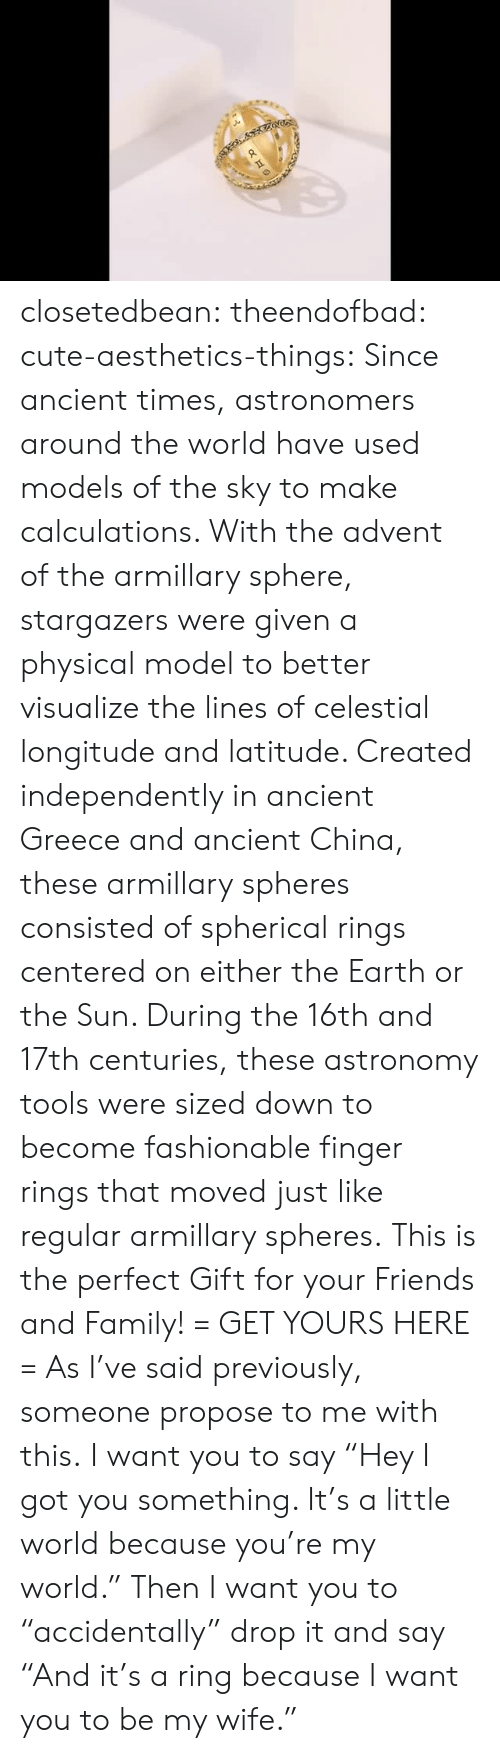 """Cute, Family, and Friends: closetedbean:  theendofbad:  cute-aesthetics-things:  Since ancient times, astronomers around the world have used models of the sky to make calculations. With the advent of the armillary sphere, stargazers were given a physical model to better visualize the lines of celestial longitude and latitude. Created independently in ancient Greece and ancient China, these armillary spheres consisted of spherical rings centered on either the Earth or the Sun. During the 16th and 17th centuries, these astronomy tools were sized down to become fashionable finger rings that moved just like regular armillary spheres. This is the perfect Gift for your Friends and Family! = GET YOURS HERE =   As I've said previously, someone propose to me with this.  I want you to say """"Hey I got you something. It's a little world because you're my world."""" Then I want you to """"accidentally"""" drop it and say """"And it's a ring because I want you to be my wife."""""""